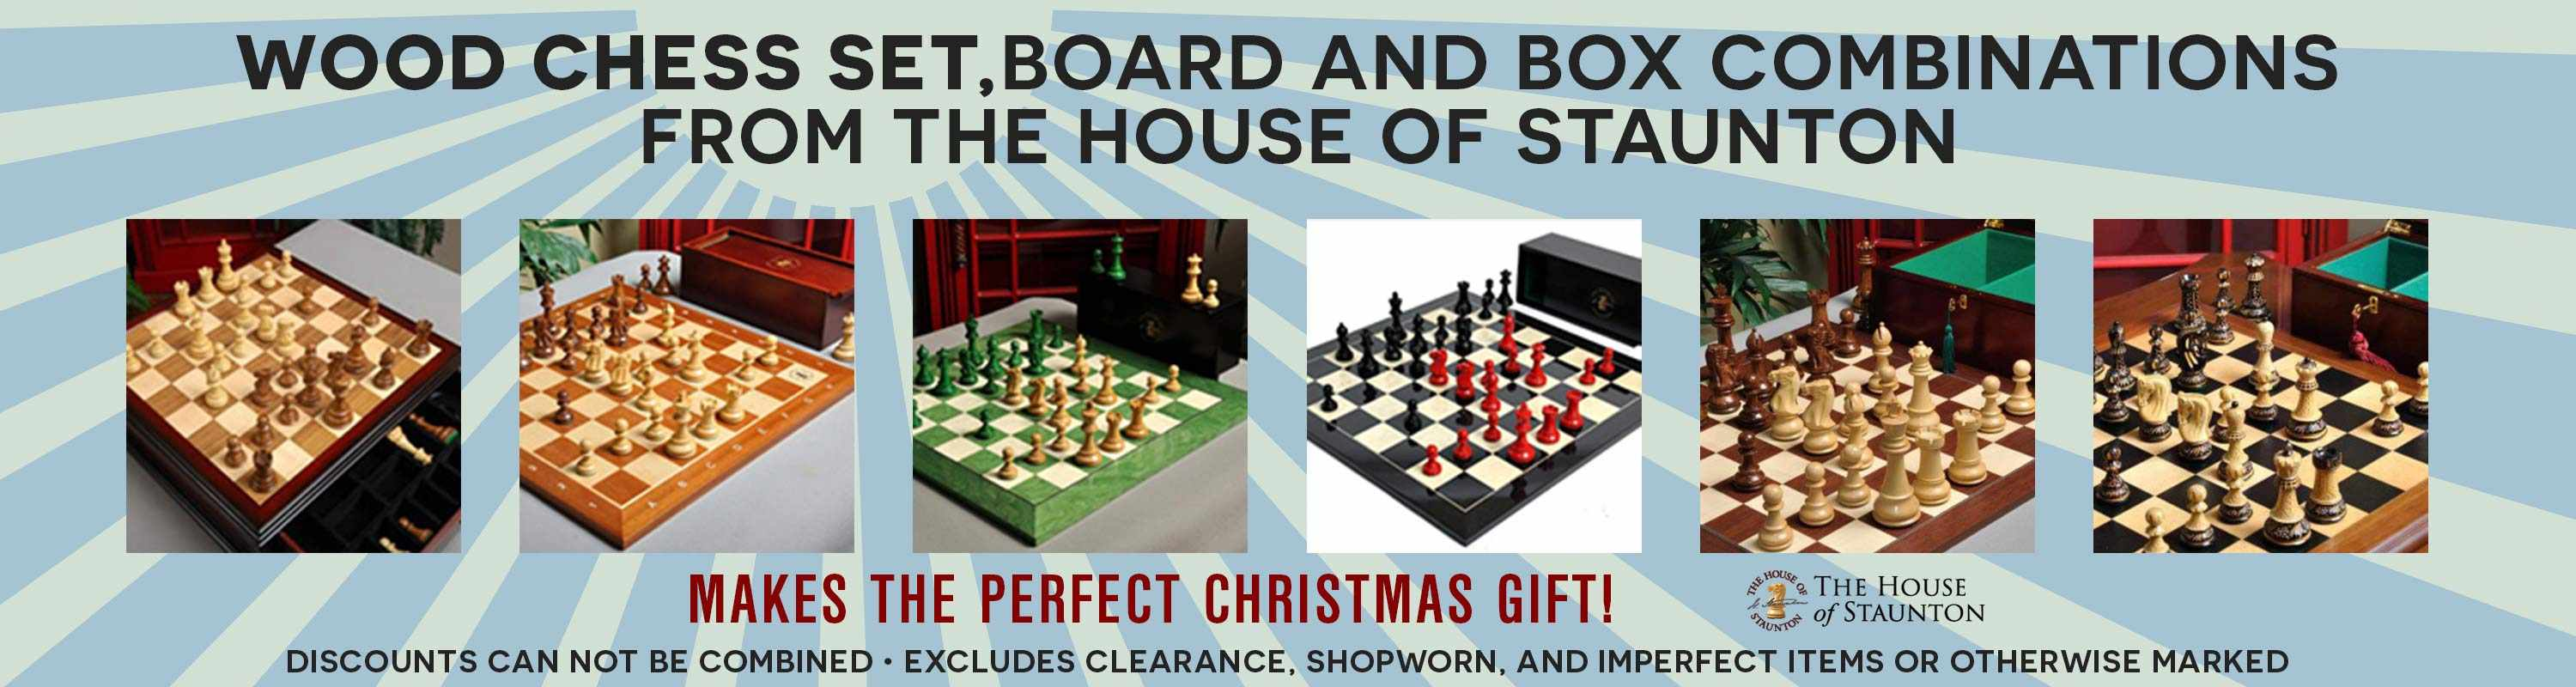 wiid chess set, board and box combinations from The House of Staunton!